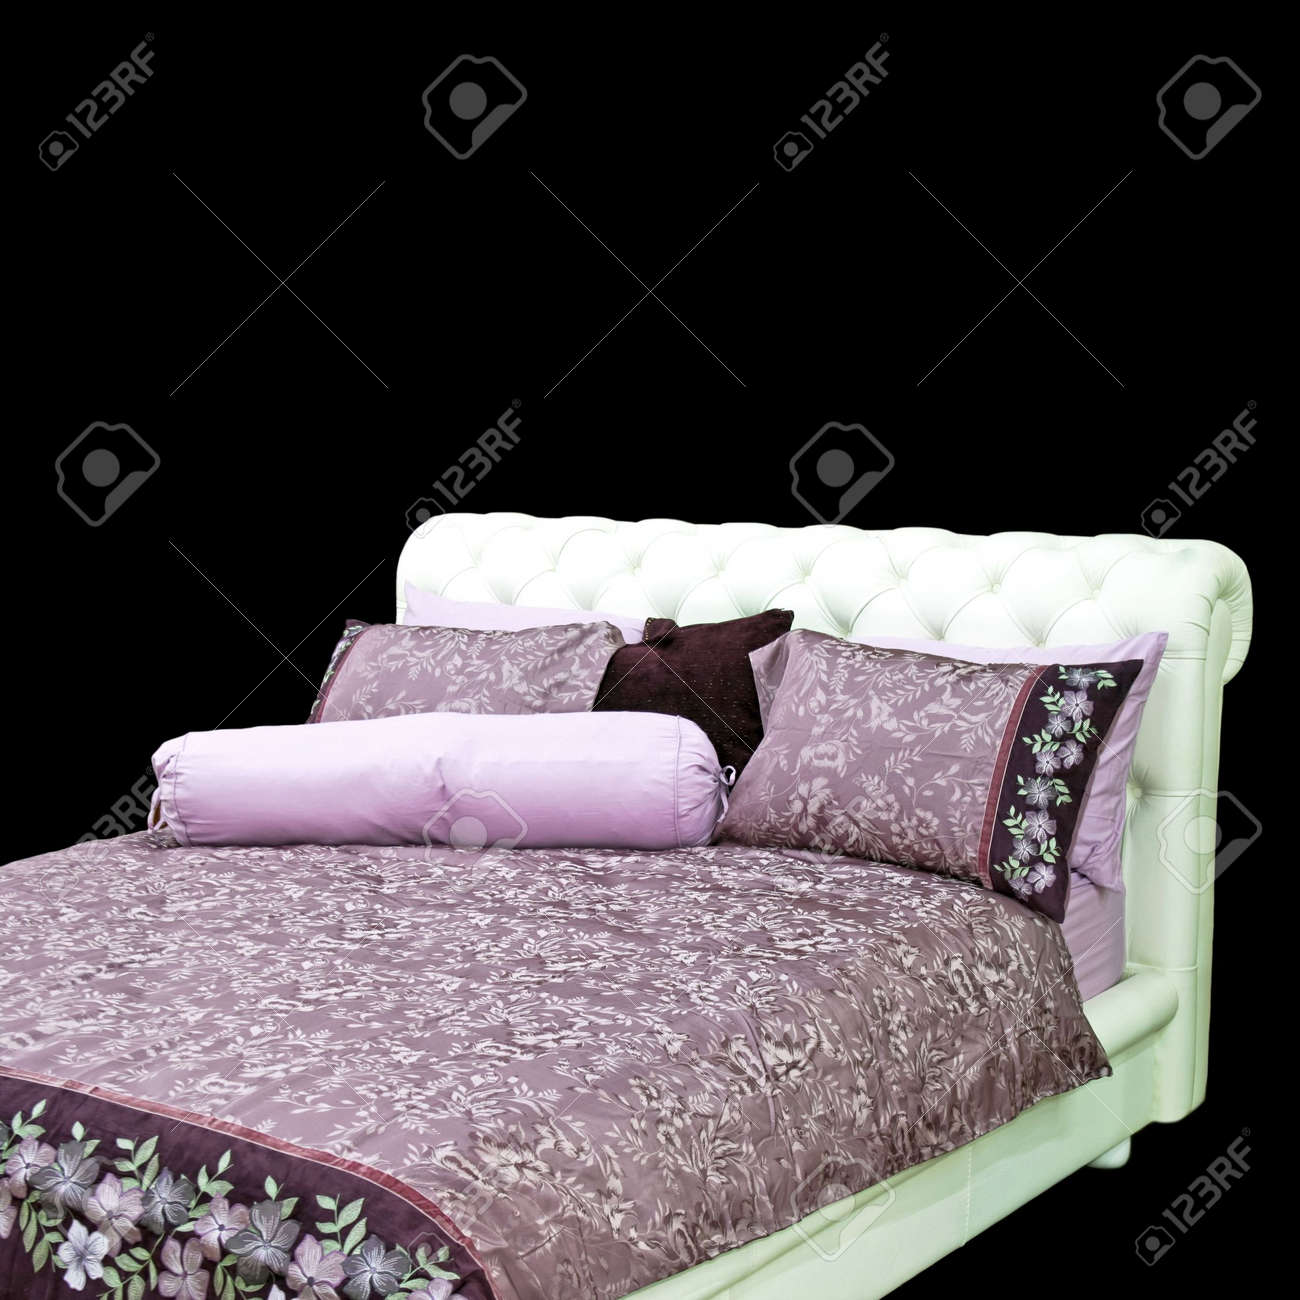 big double bed with purple bedding and pillows stock photo